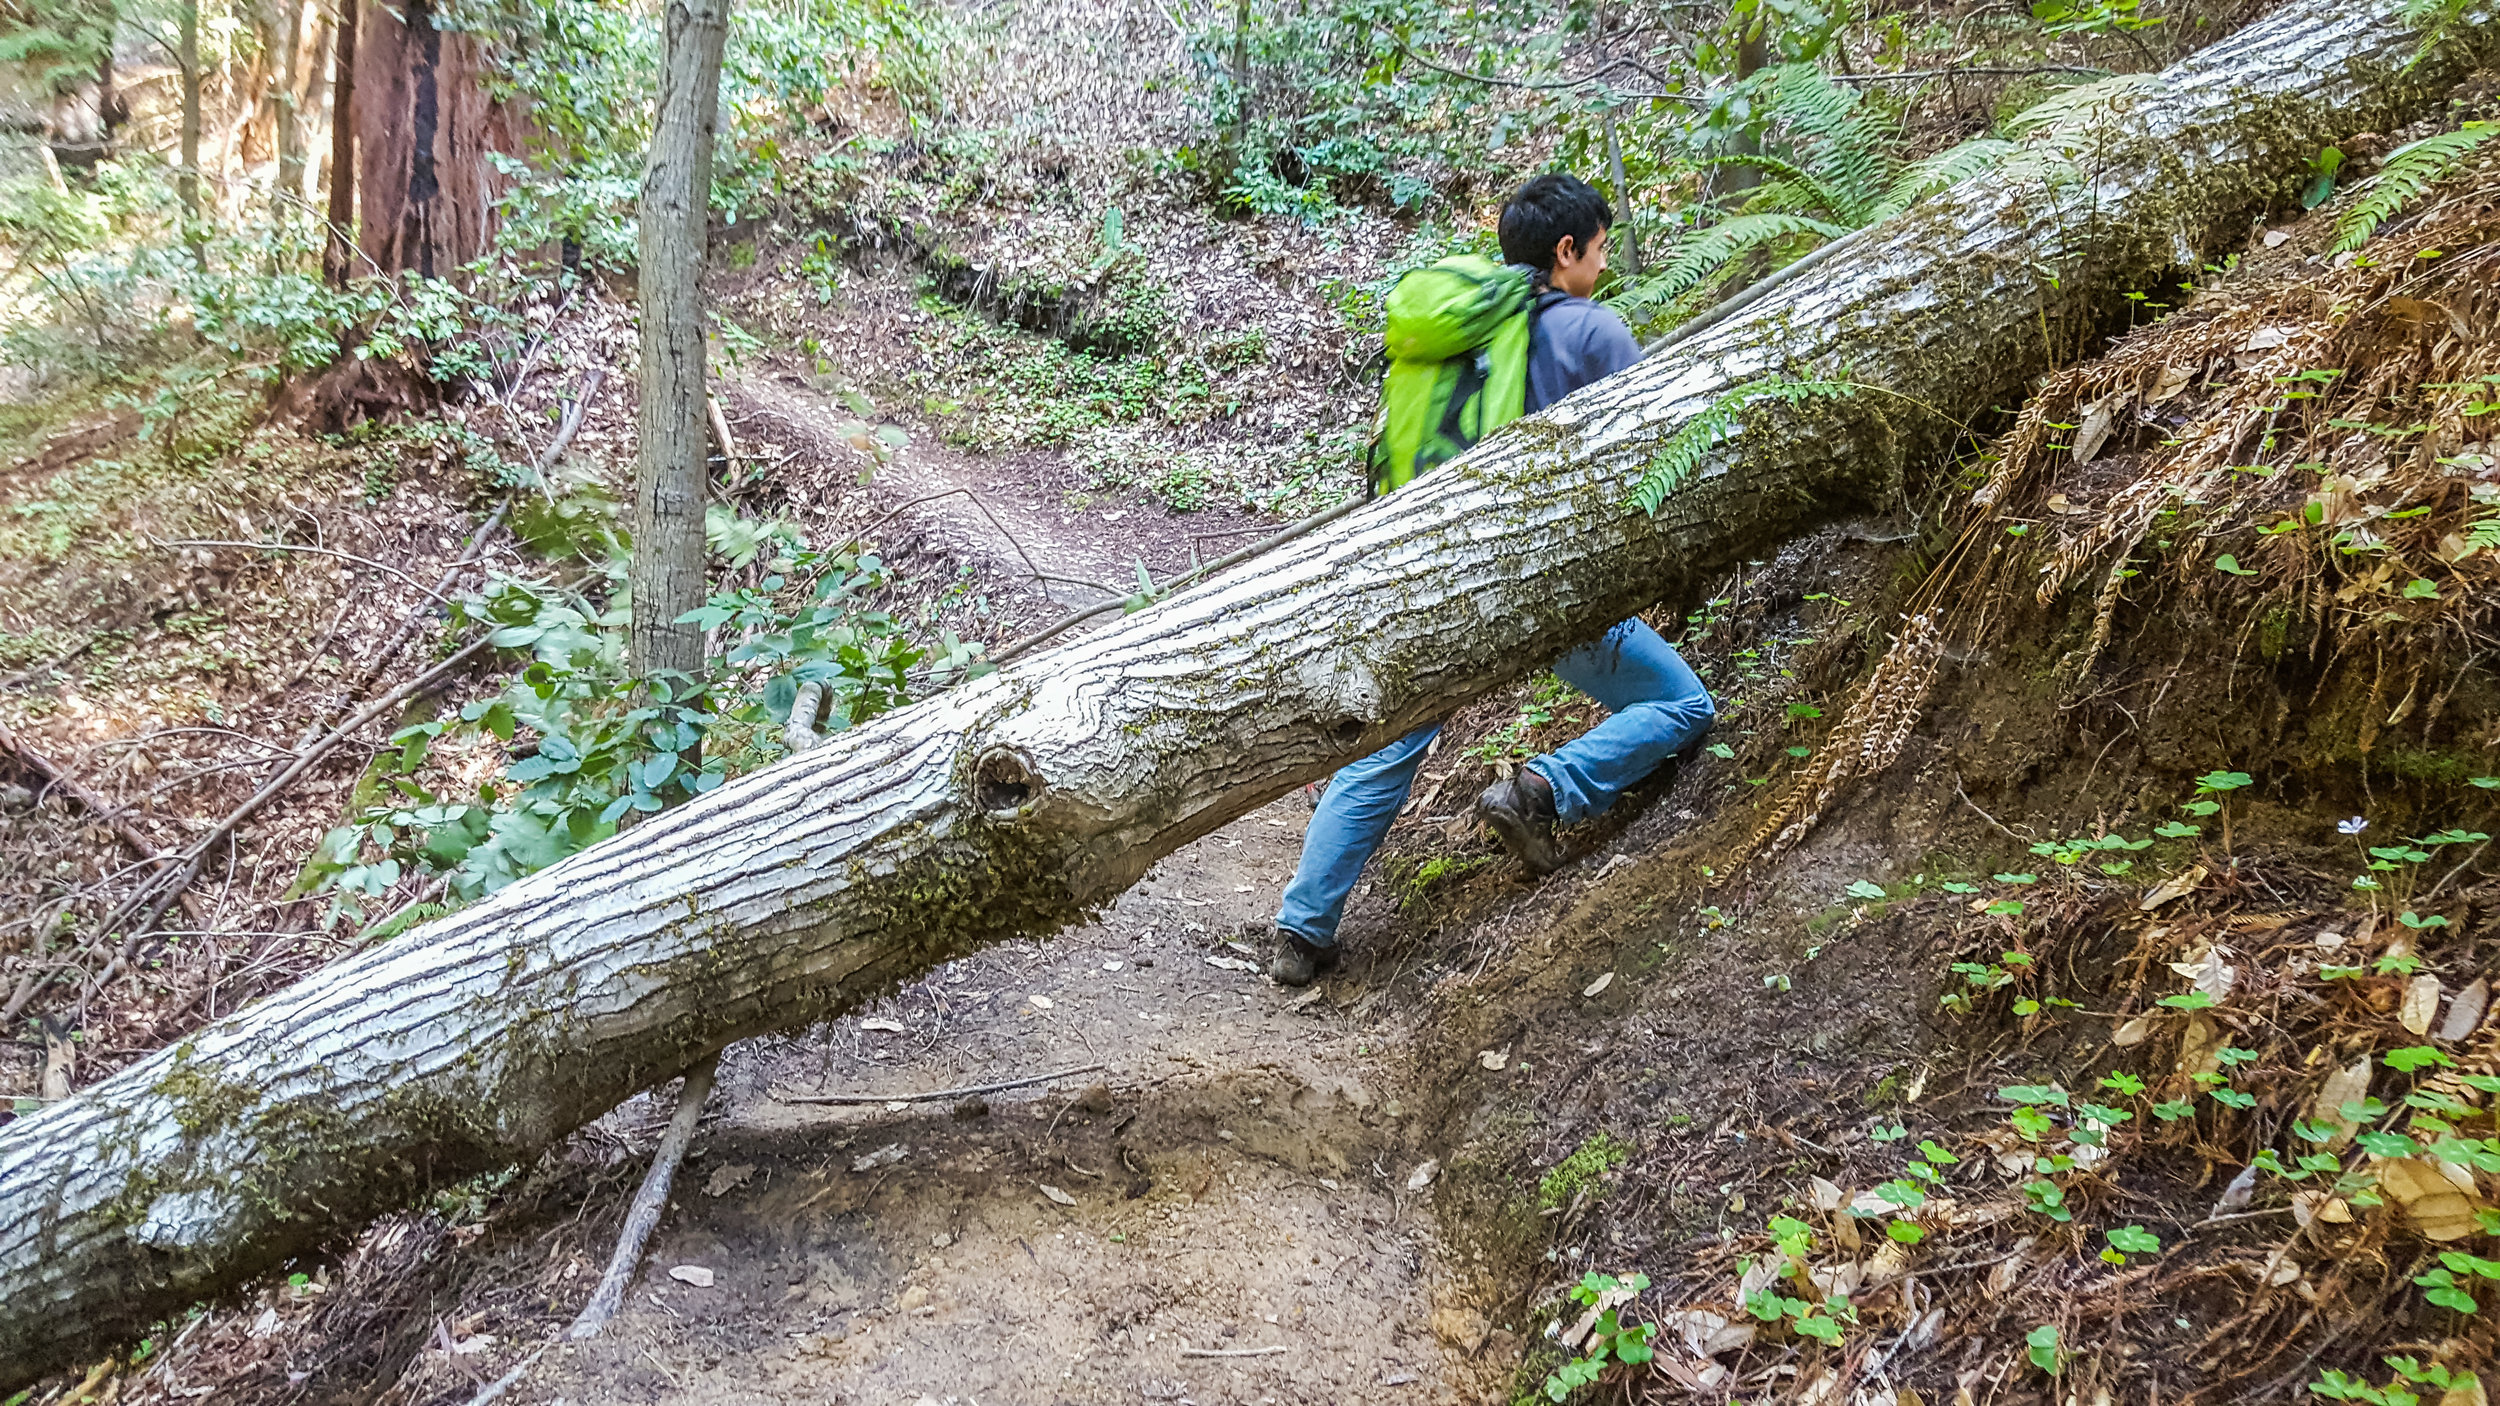 While the rest of the group finished the downhill portion of the site, Michael and I went a little further down the trail to clear out a small Tan Oak I remember from Kurt's report last month.